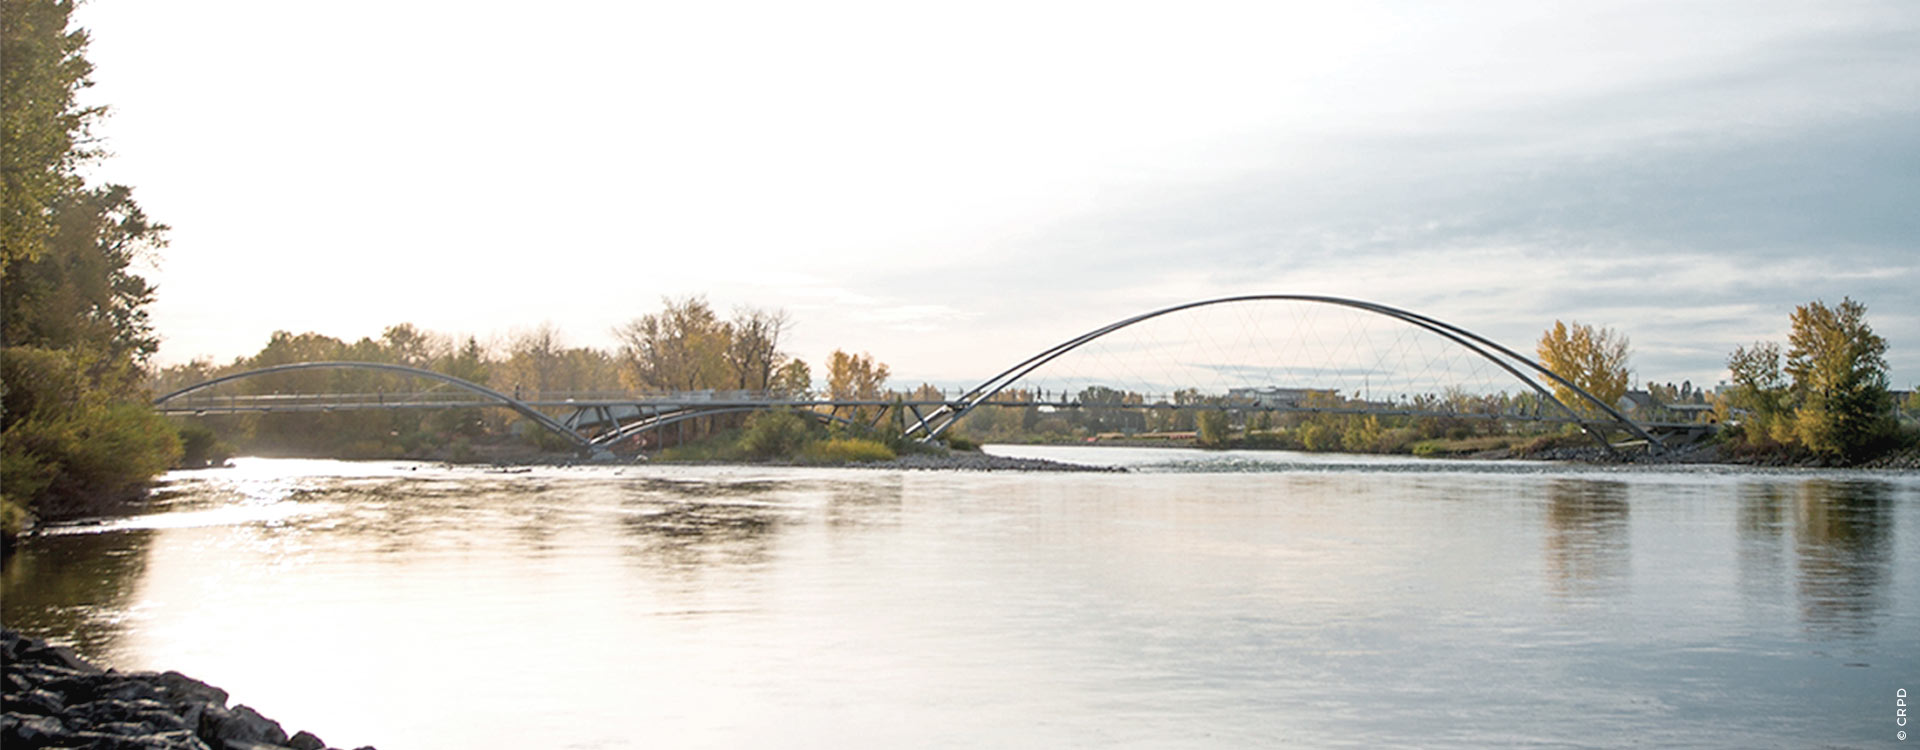 George C. King Bridge, Canadá